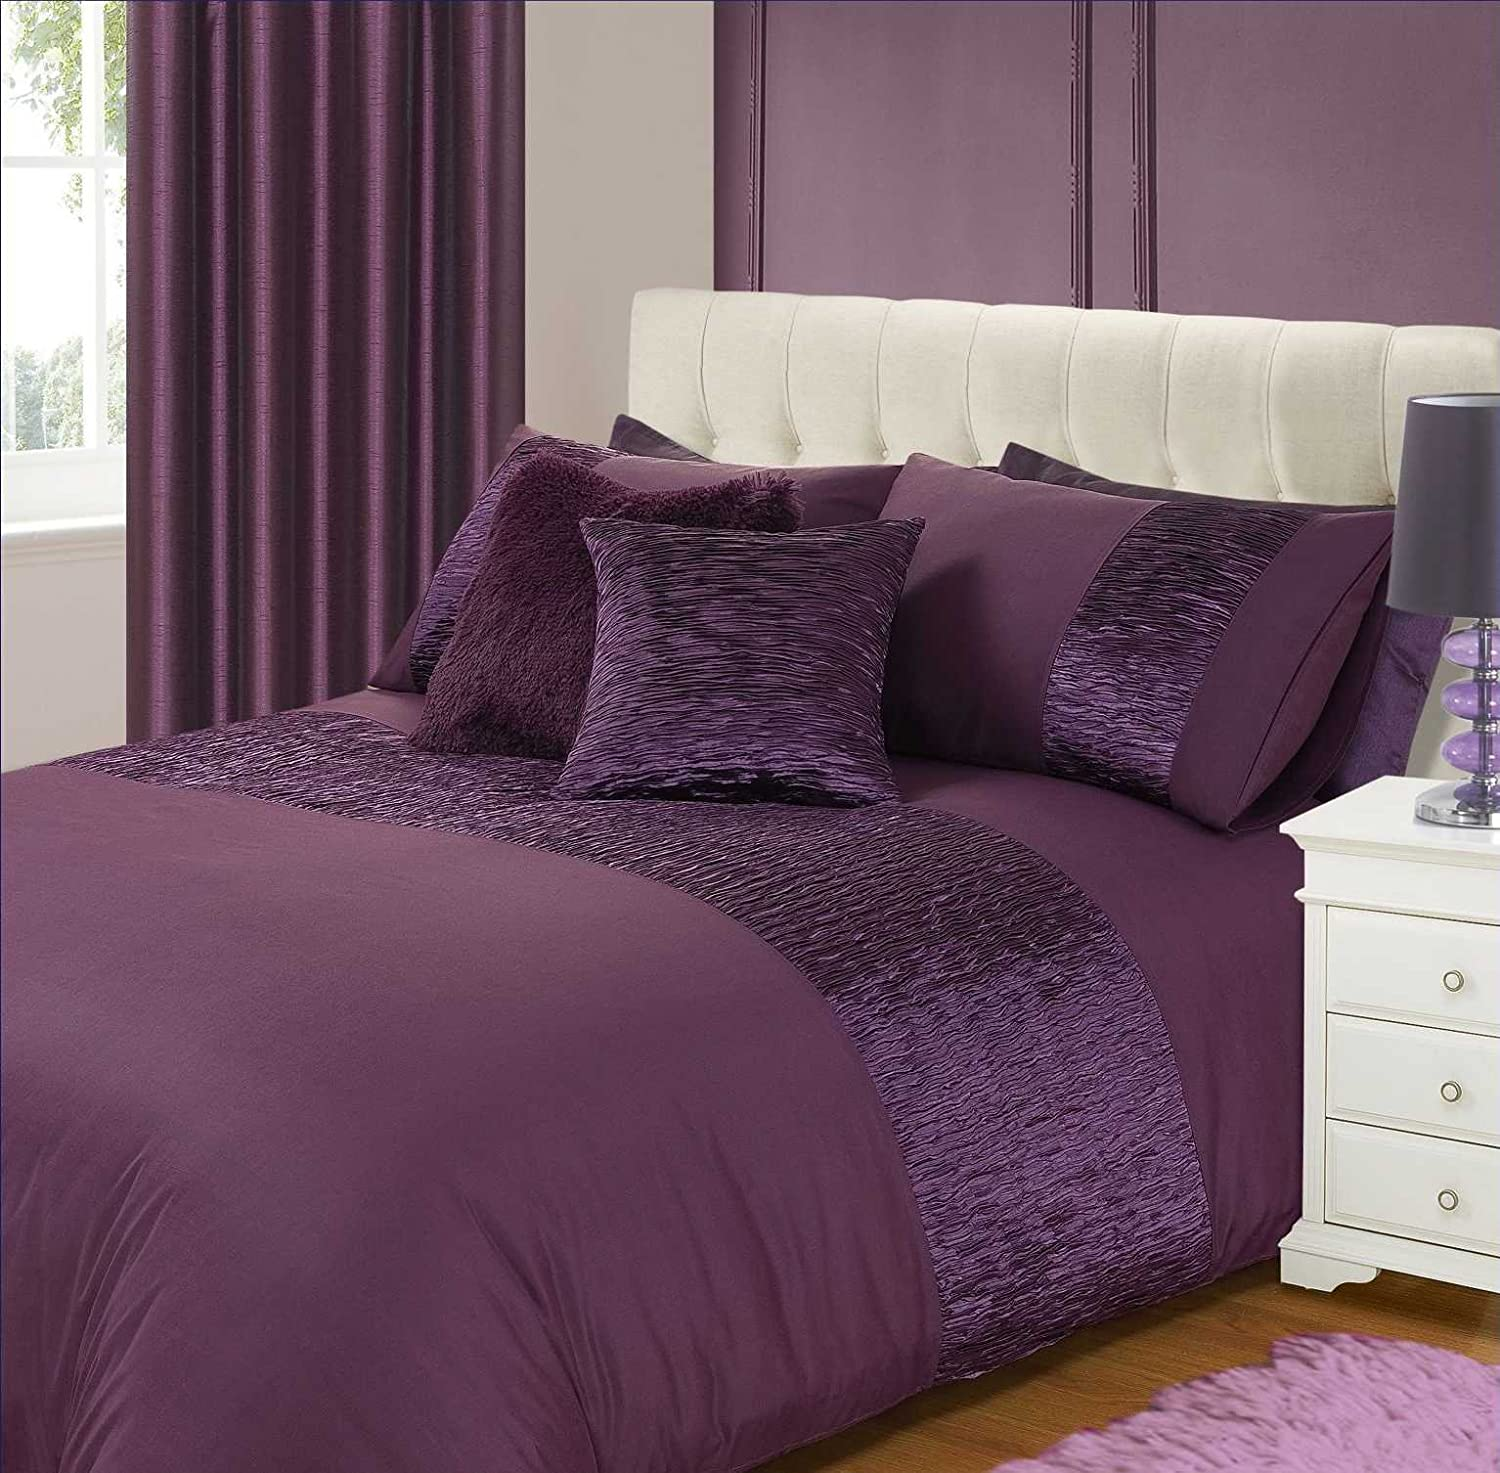 King Size Bed Freya Duvet / Quilt Cover Bedding Set Pleated Purple ...